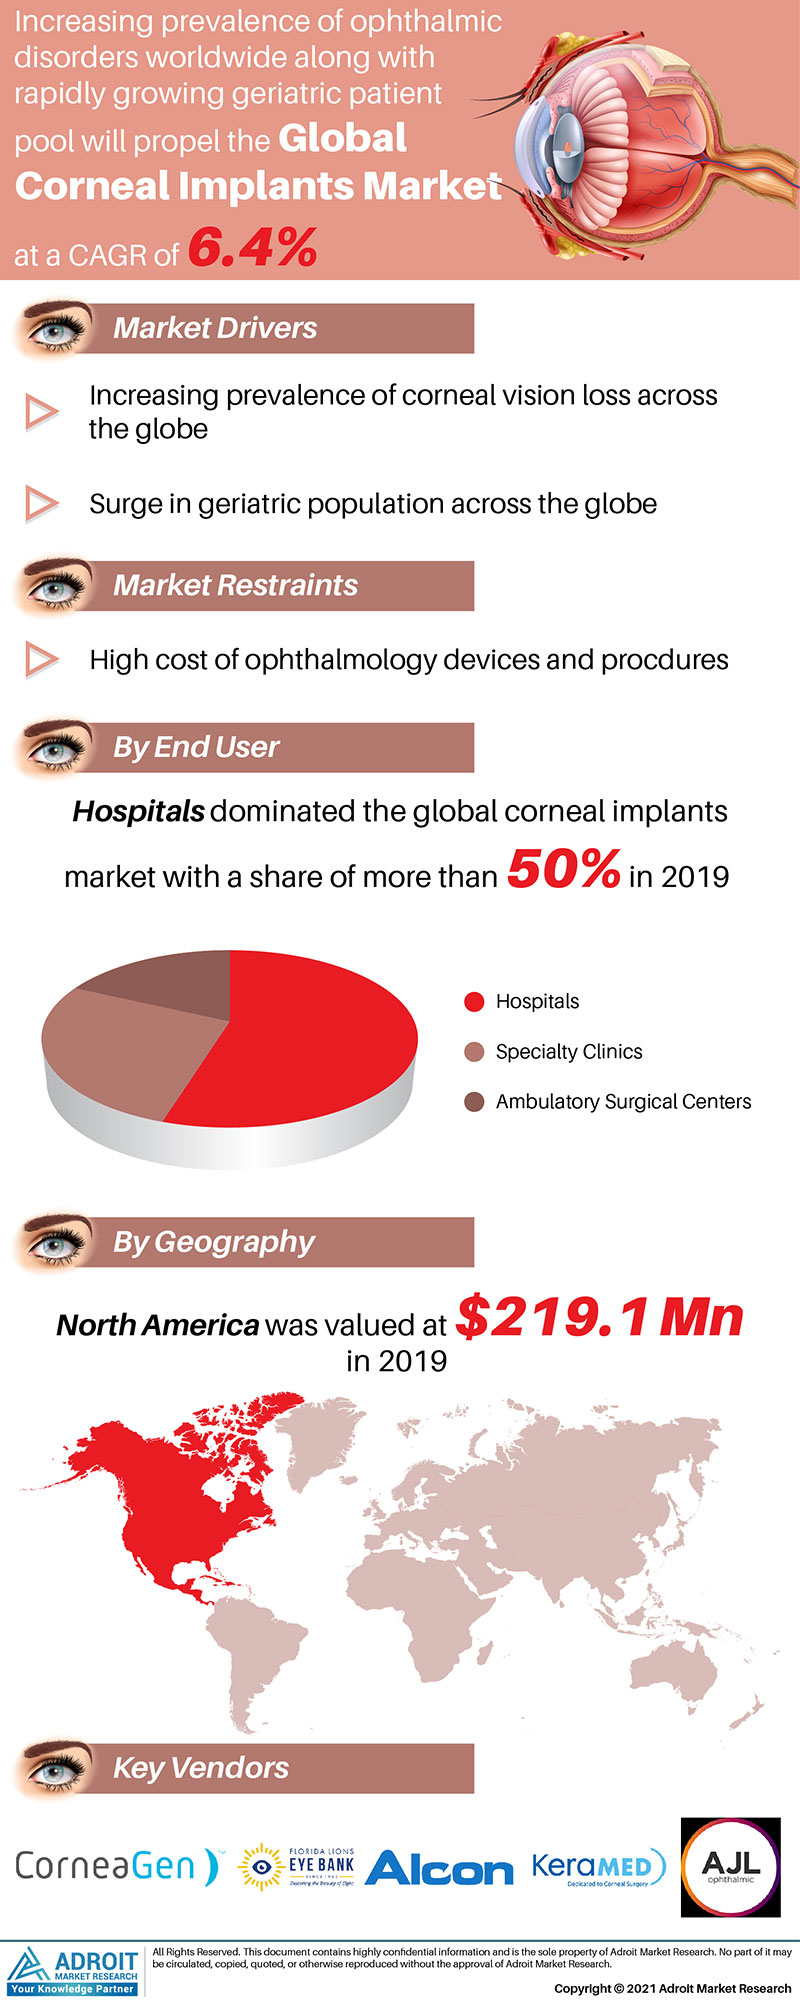 Corneal Implants Market Size 2017 By Application, Product, Region and Forecast 2019 to 2025